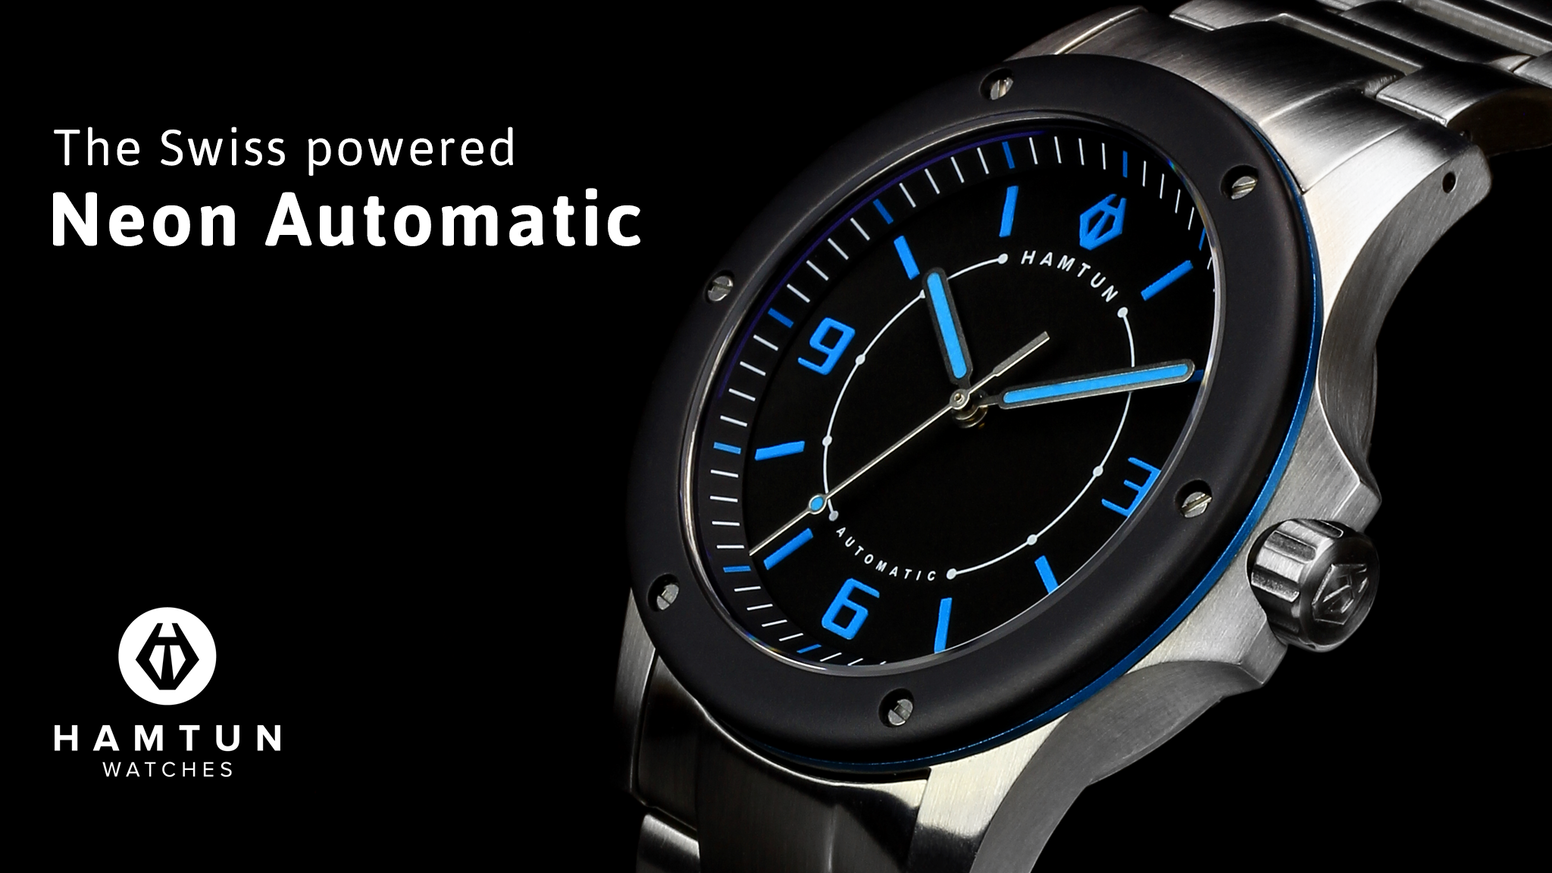 Neon Automatic: stunning Swiss powered watches from Hamtun